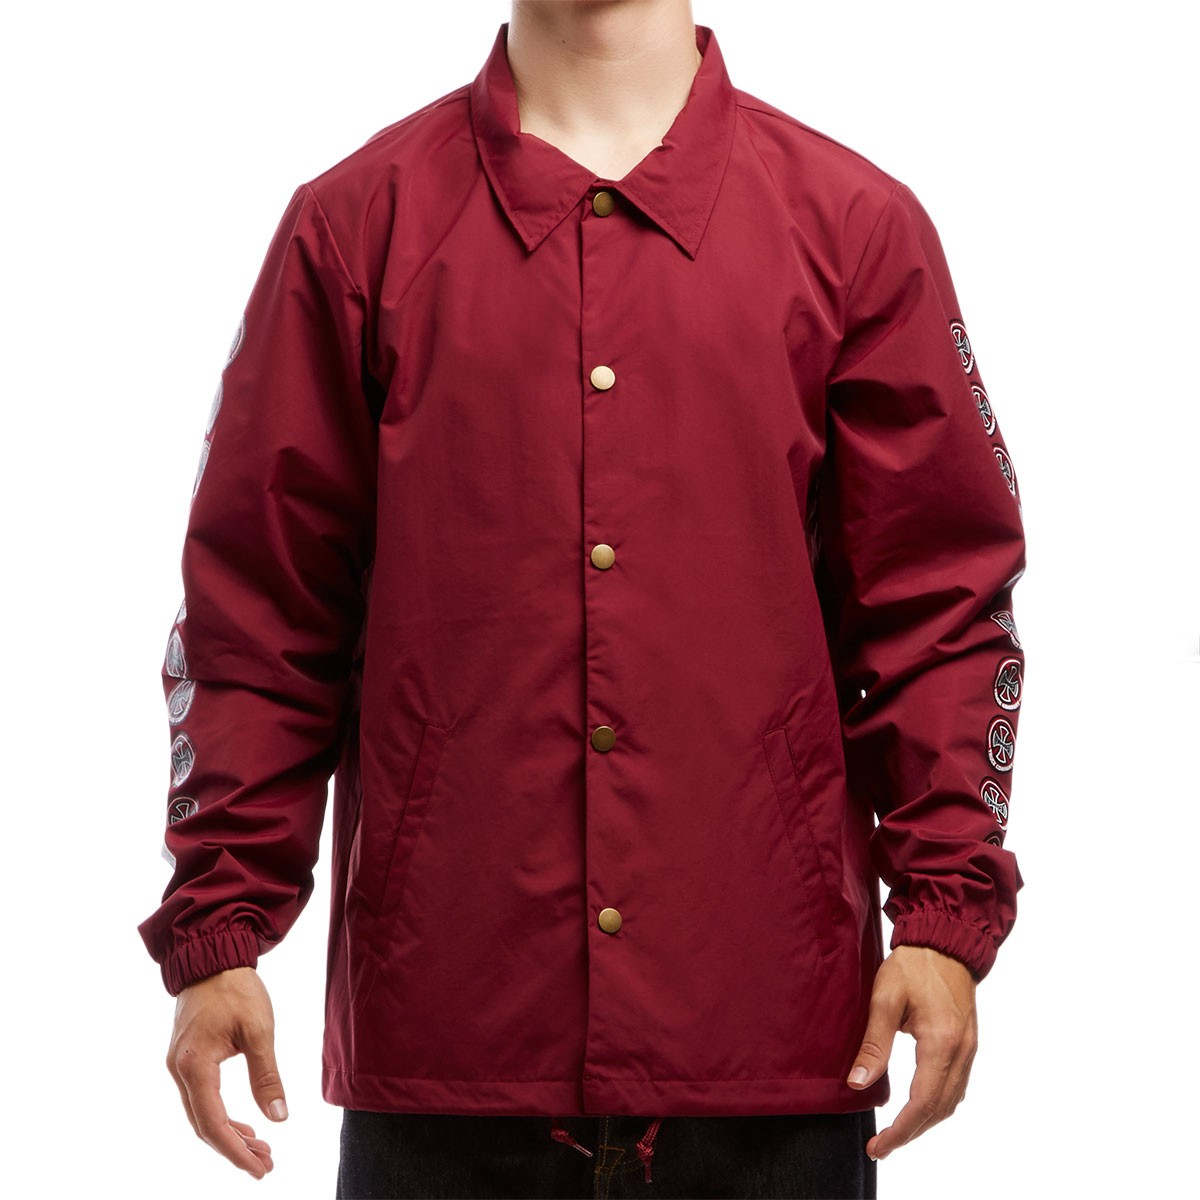 Quatro Coach Windbreaker Jacket - Cardinal